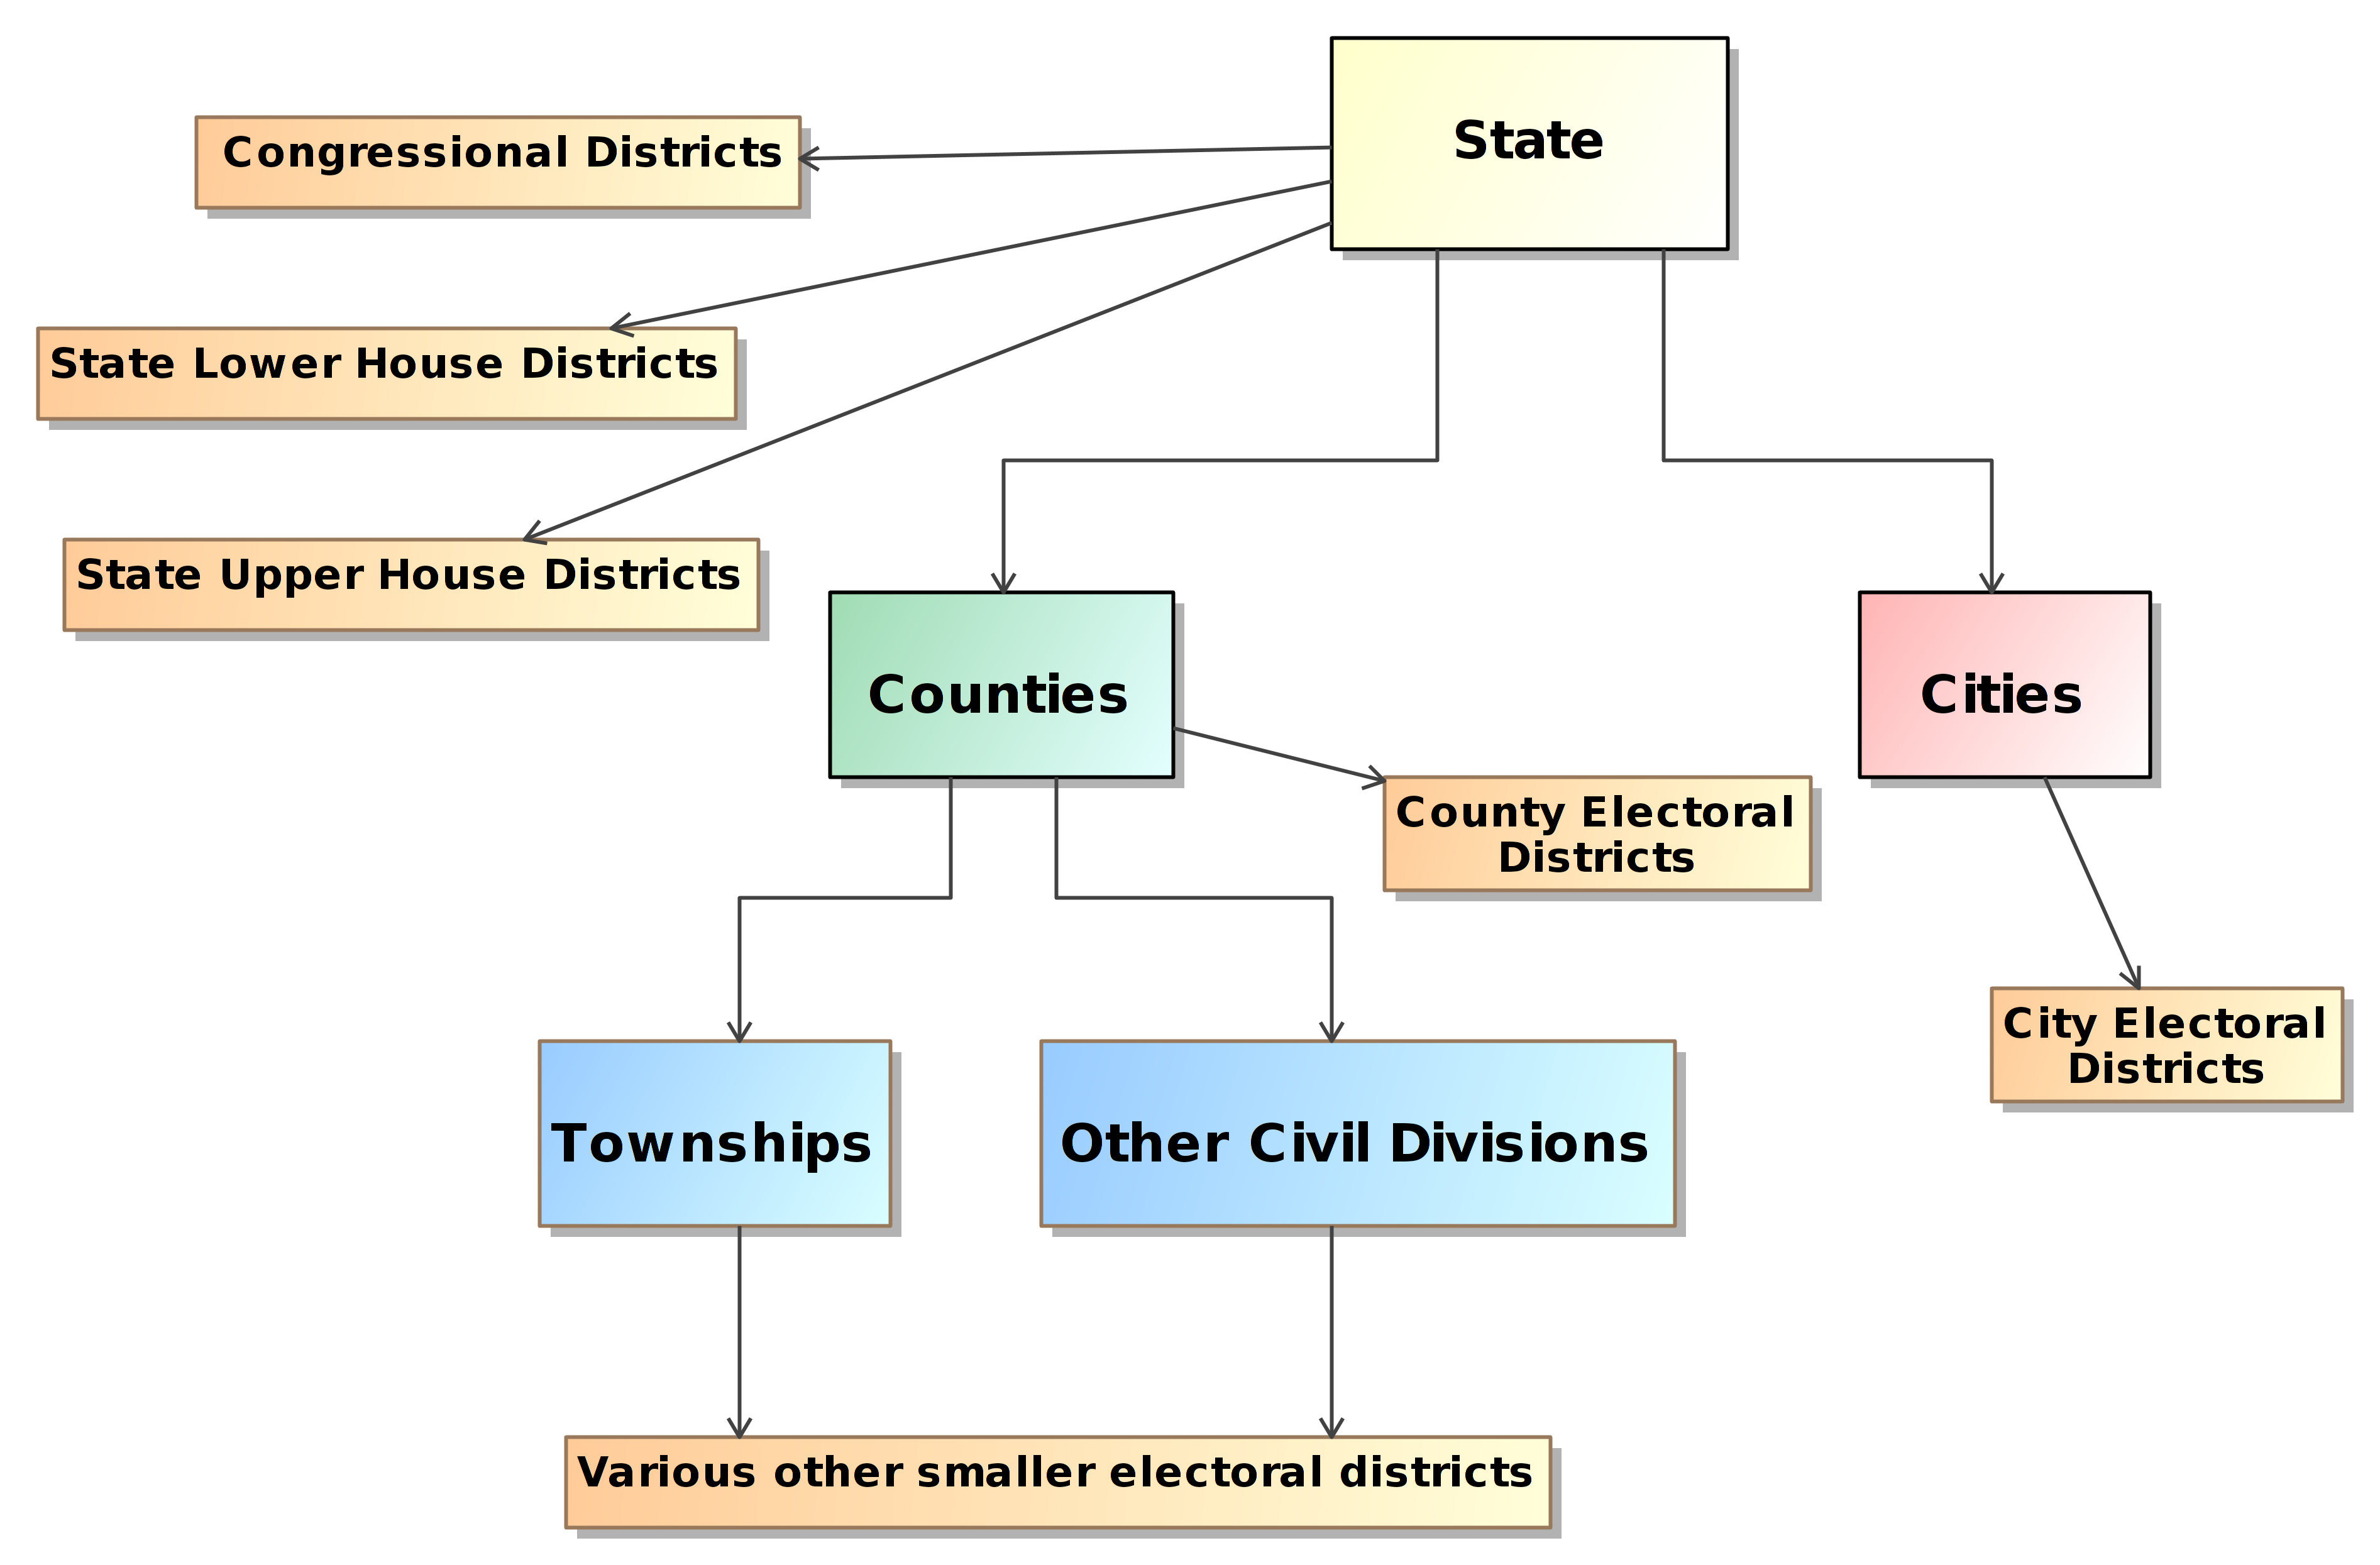 Nist Sp 1500 100 Election Results Reporting Common Data Format An Example Of Uml State Machine Diagram For Water Phases Figure 2 Political Based Geographies